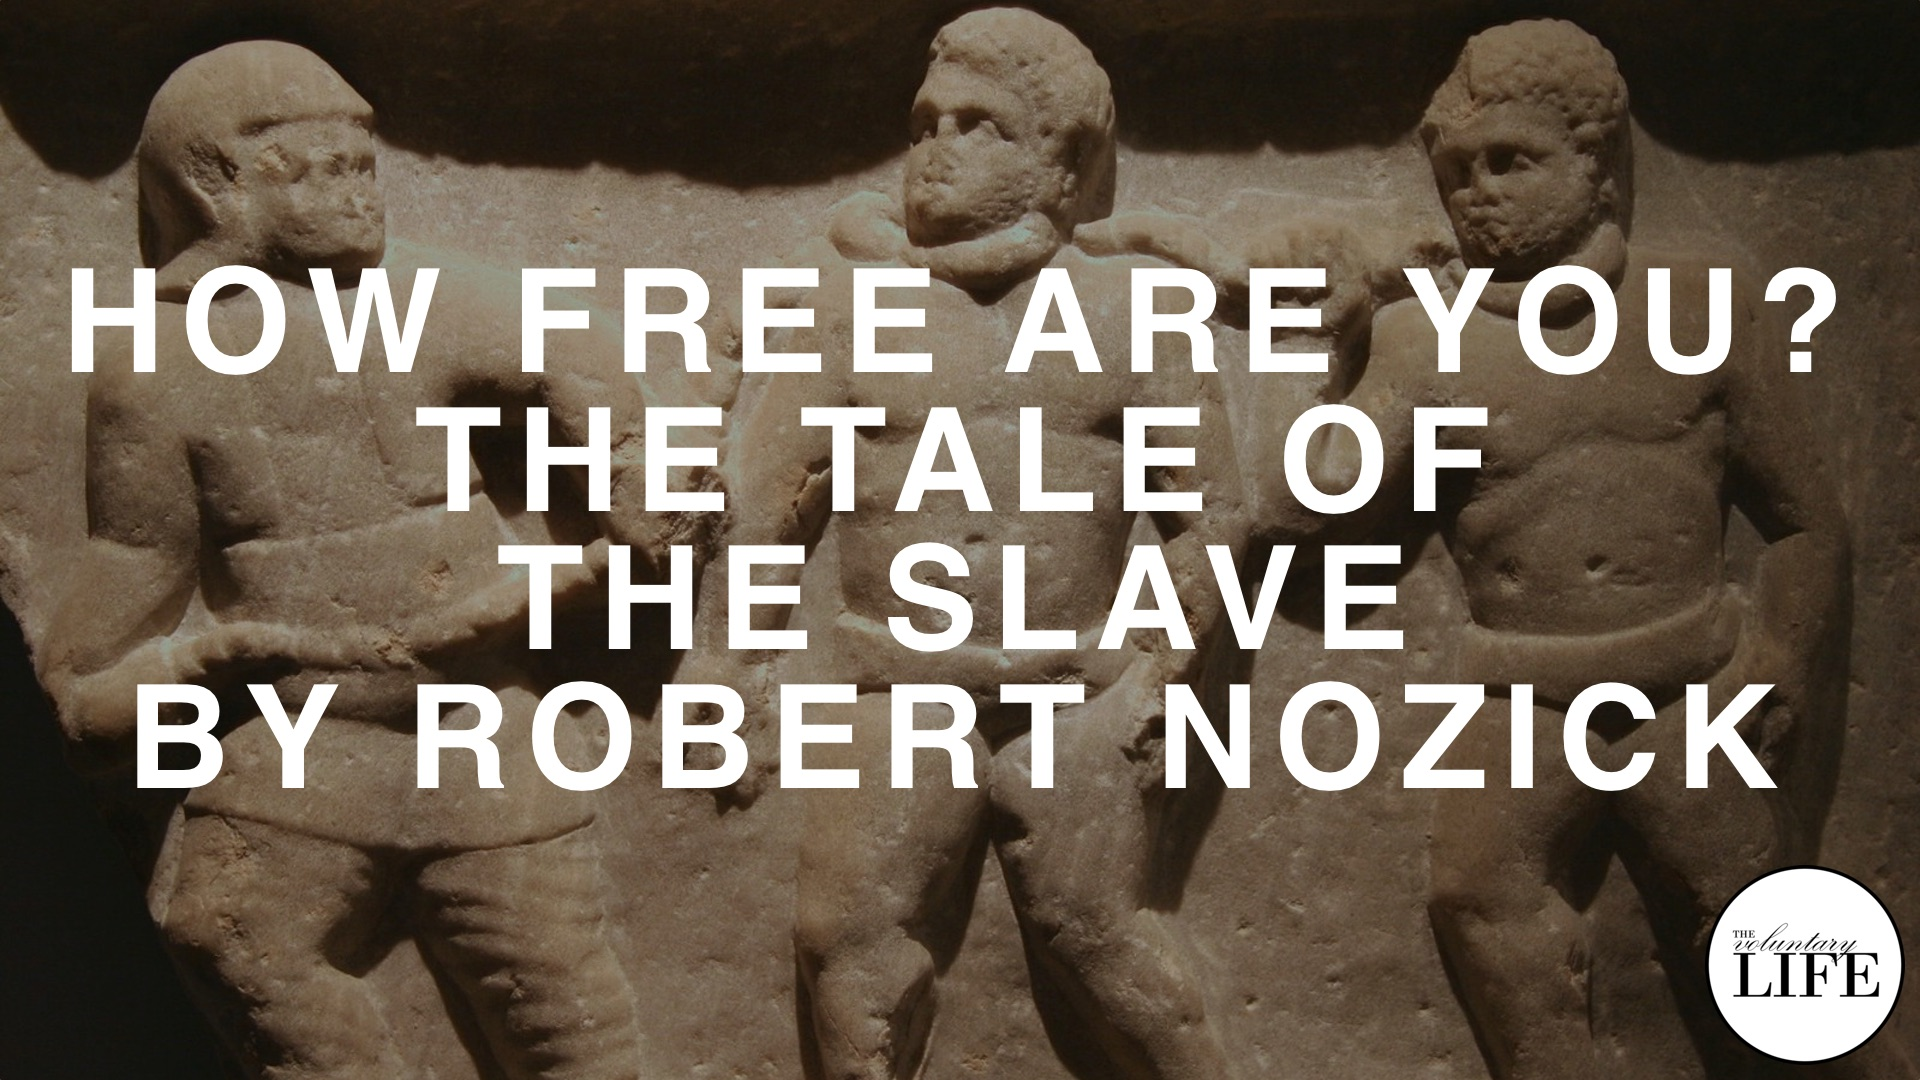 334 How Free Are You? The Tale of The Slave By Robert Nozick